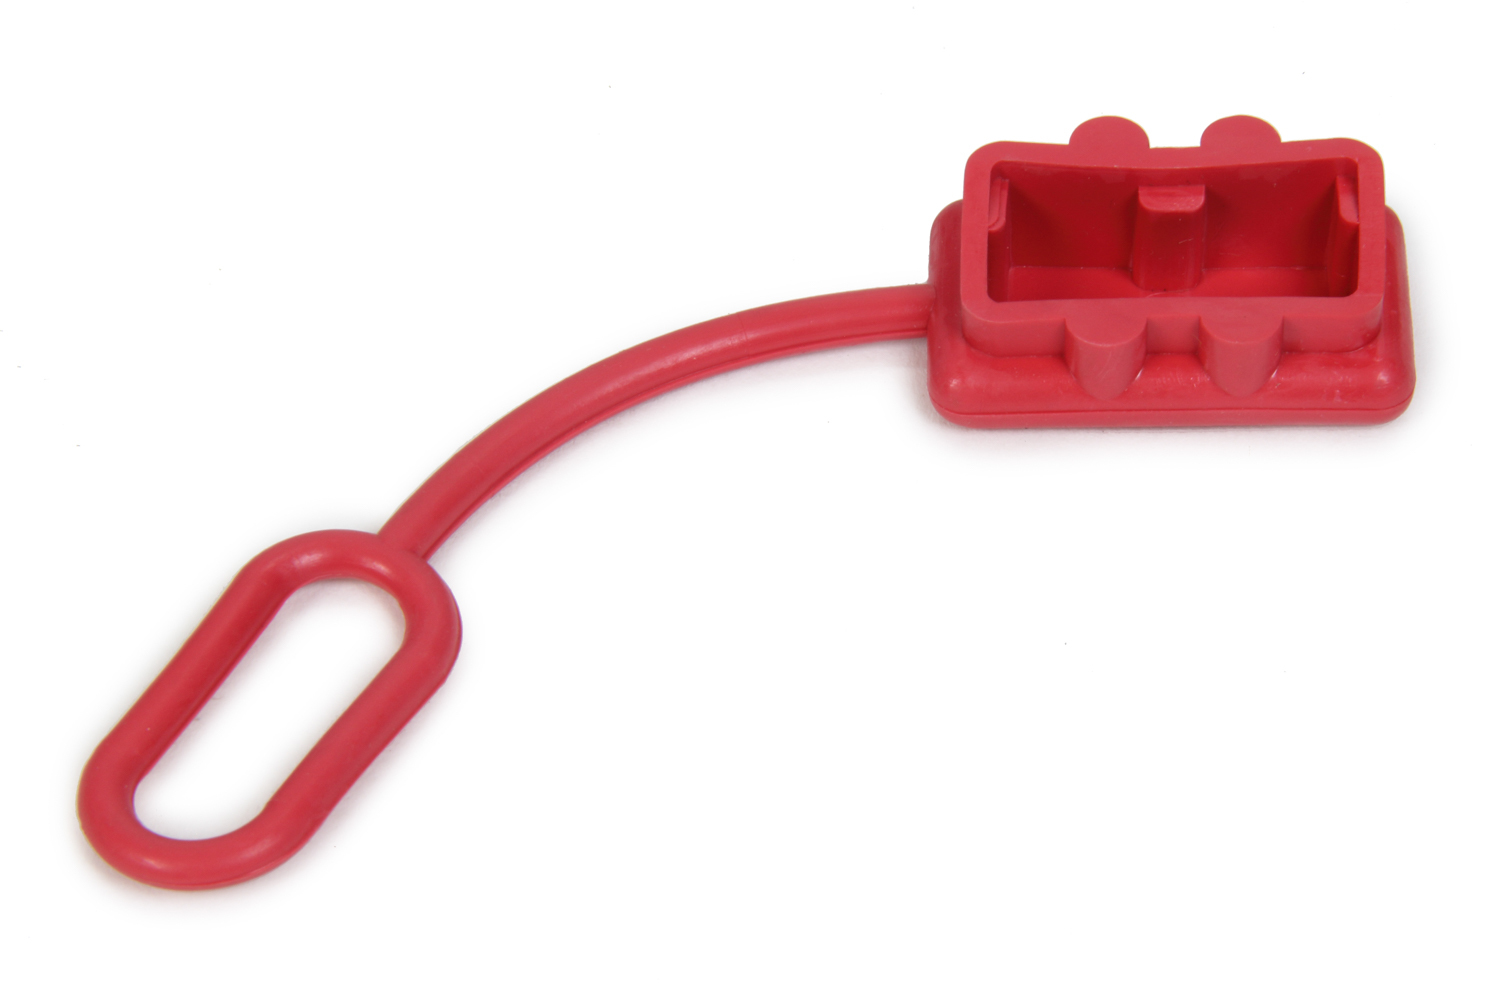 Allstar Performance 76324 Quick Disconnect Cover, Rubber, Red, Allstar 50 amp Battery Cable Quick Disconnects, Each